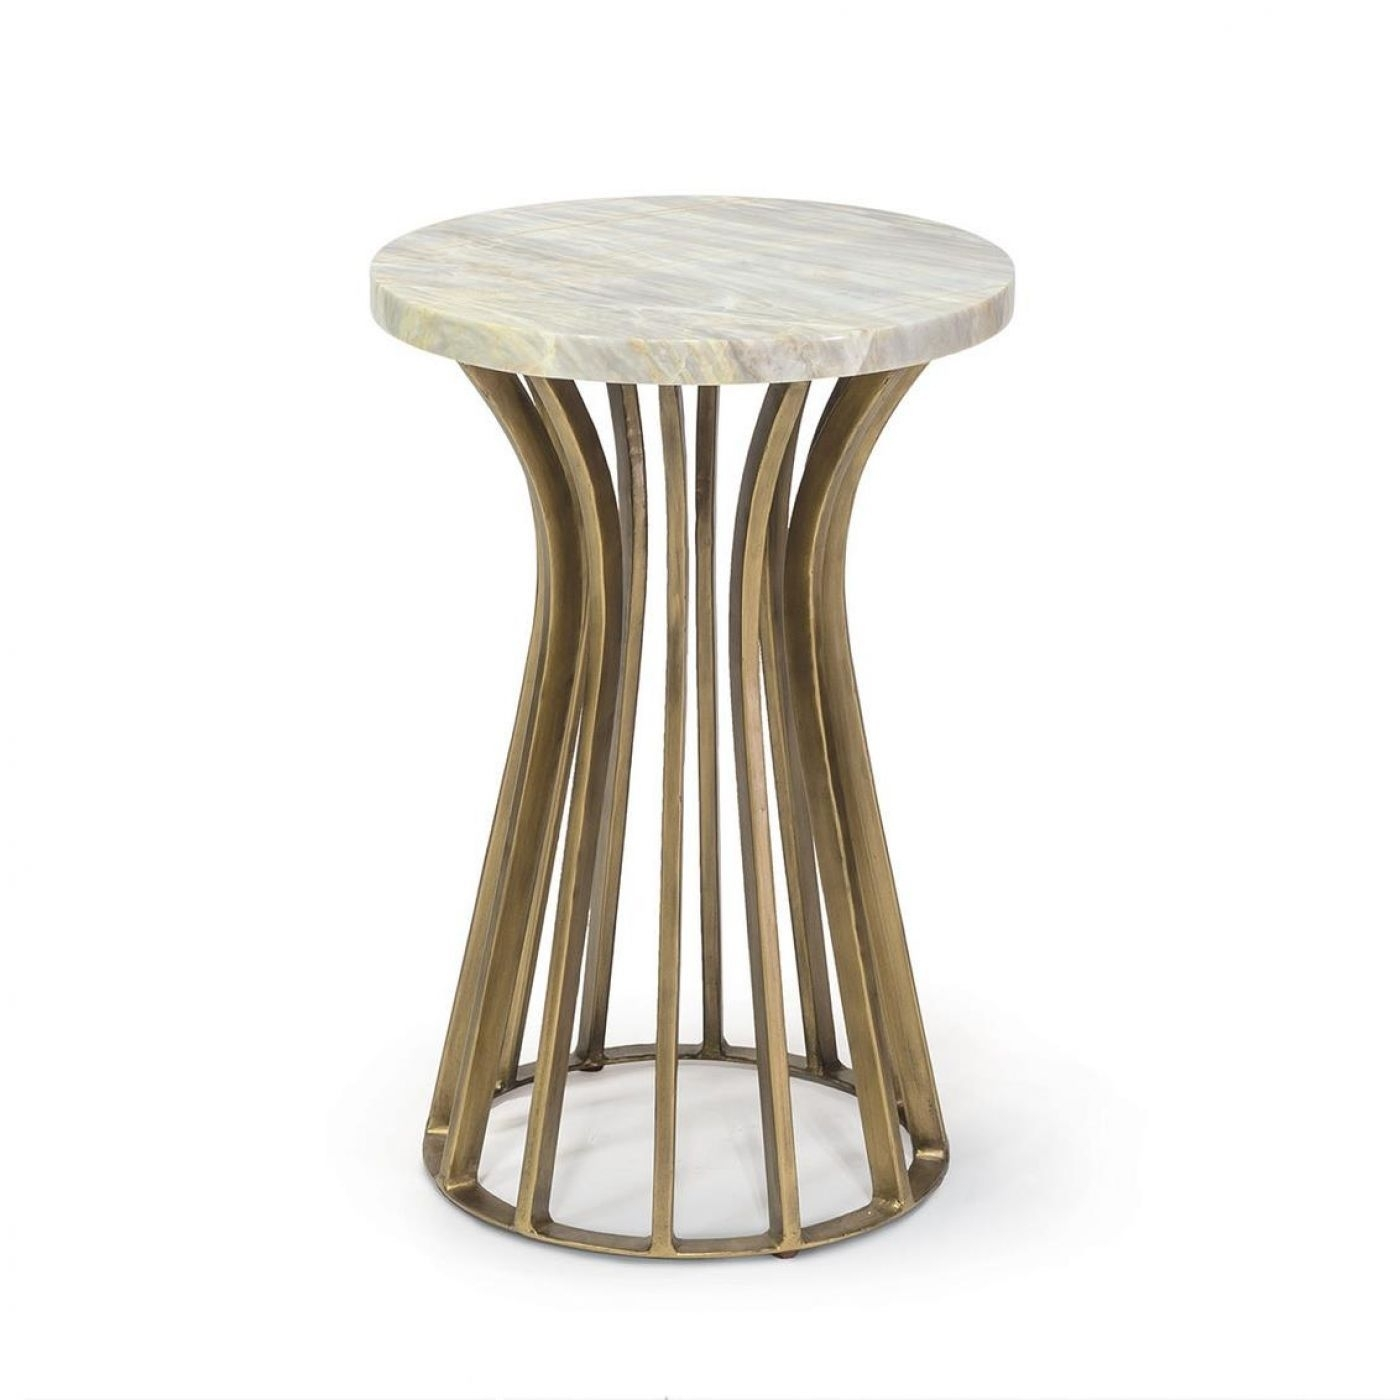 A Gold Wrought Iron Side Table Featuring A Marble Top (Image 3 of 30)